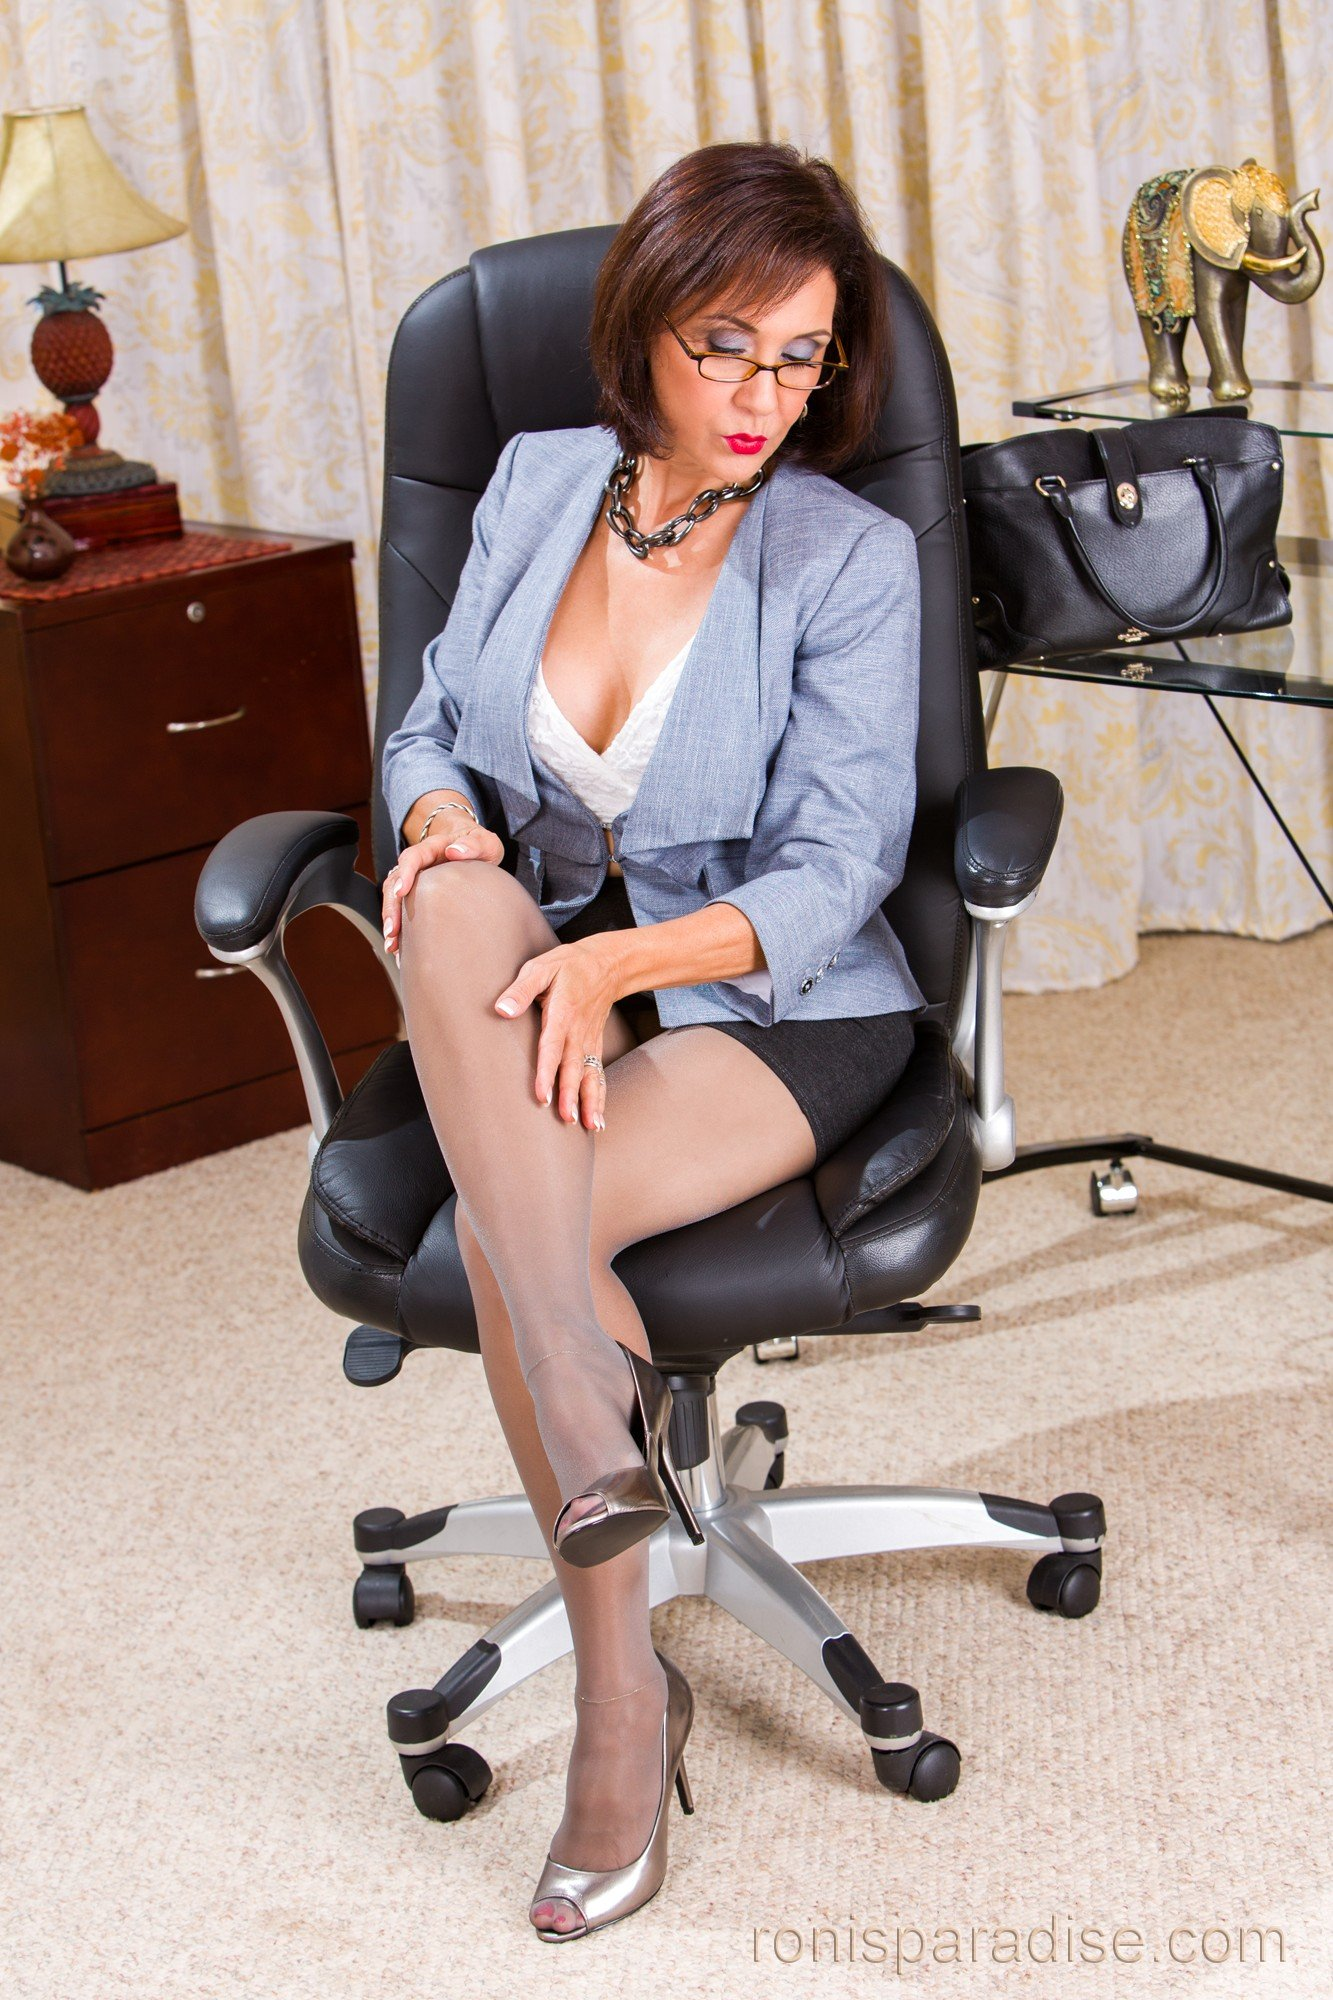 Apologise, office pantyhose pics simply excellent